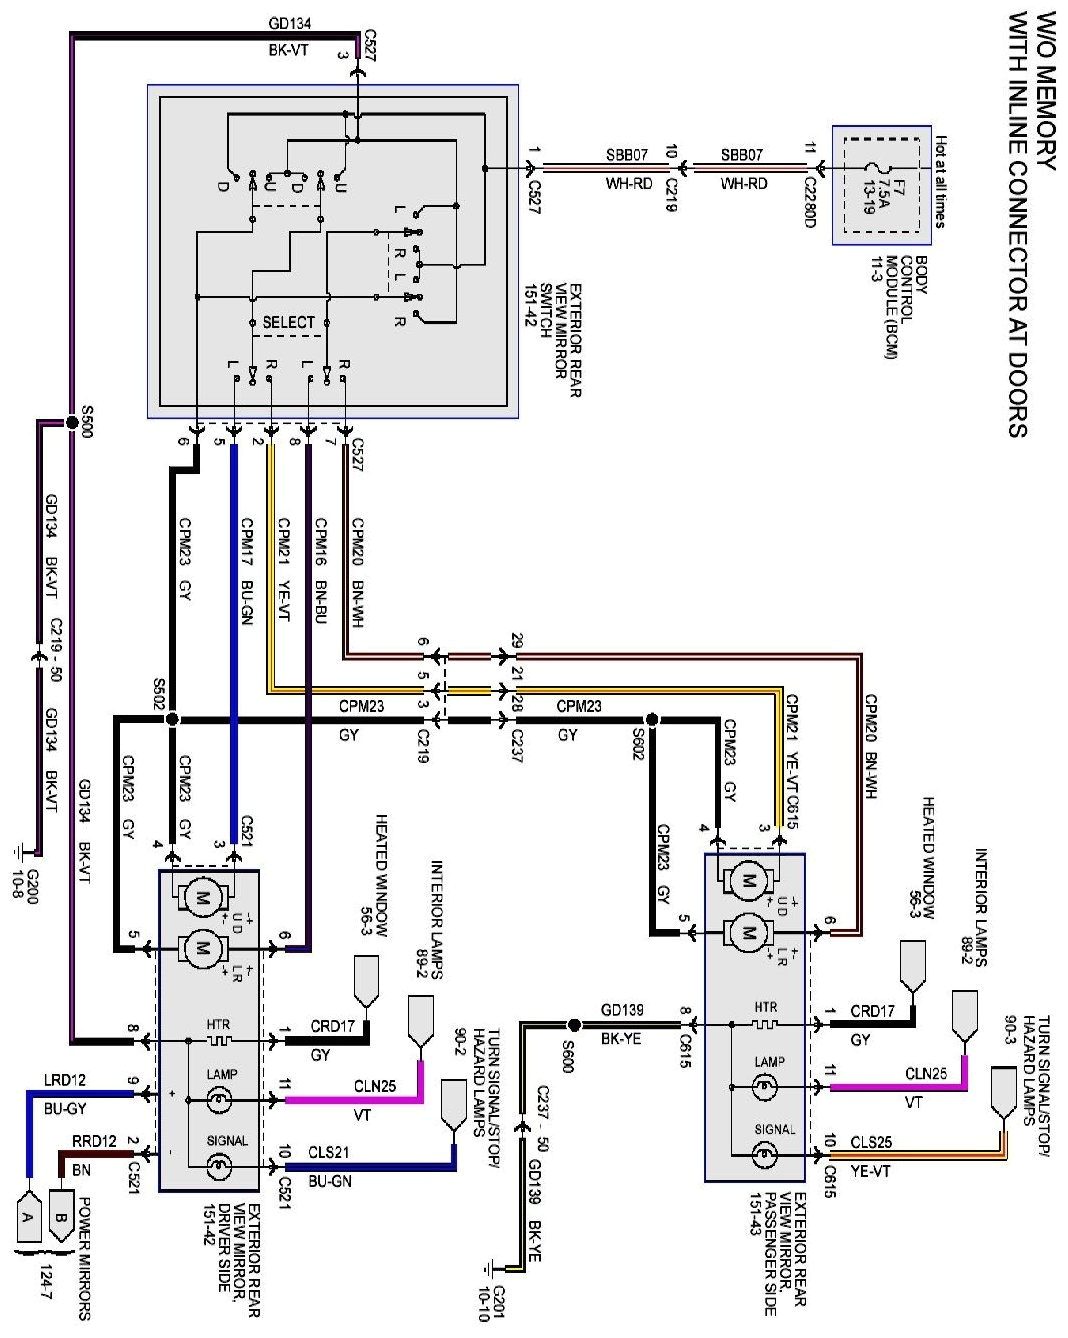 power mirror switch wiring diagram inspirational 2012 06 23 f150 1 2008 ford f250 mirror wiring diagram 4 of power mirror switch wiring diagram jpg